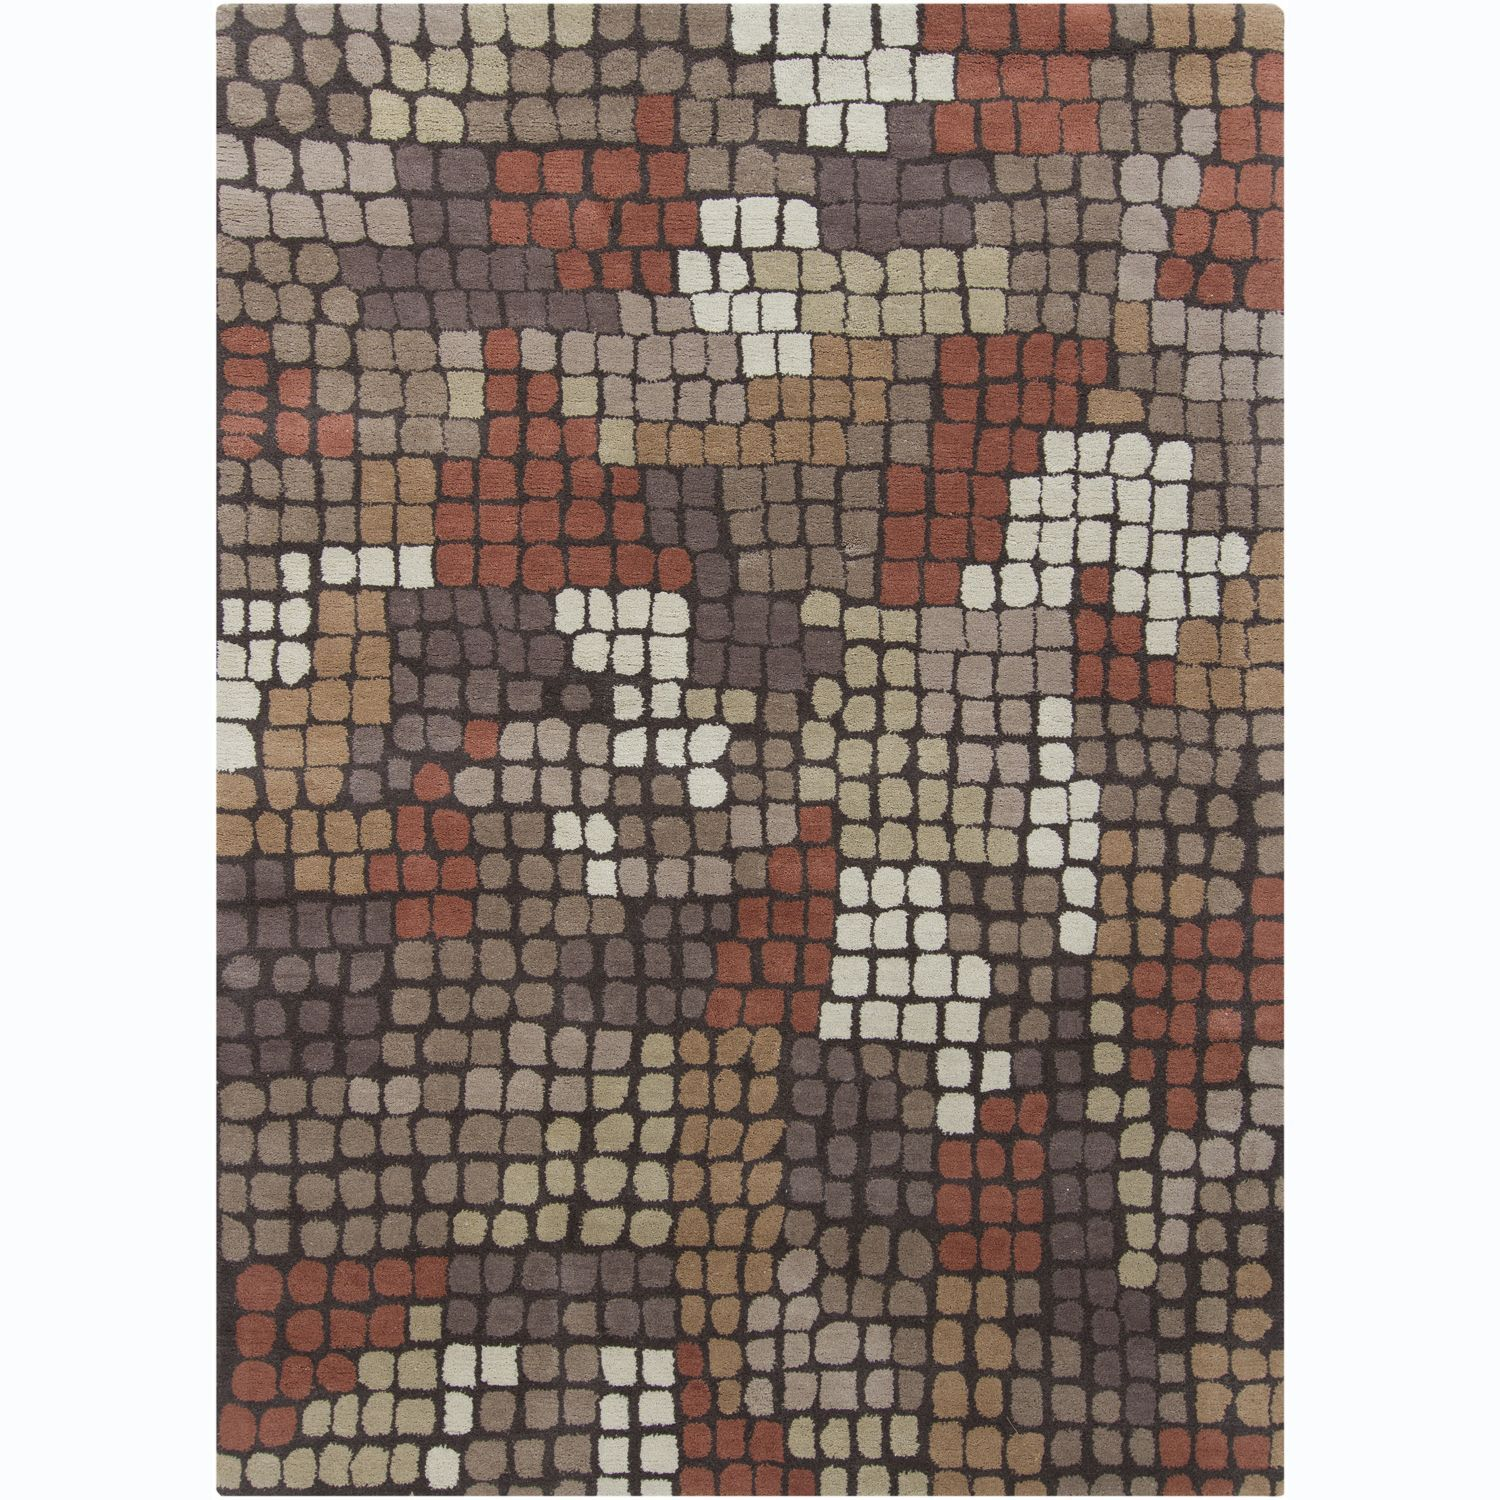 Artist's Loom Hand-tufted Contemporary Geometric Rug